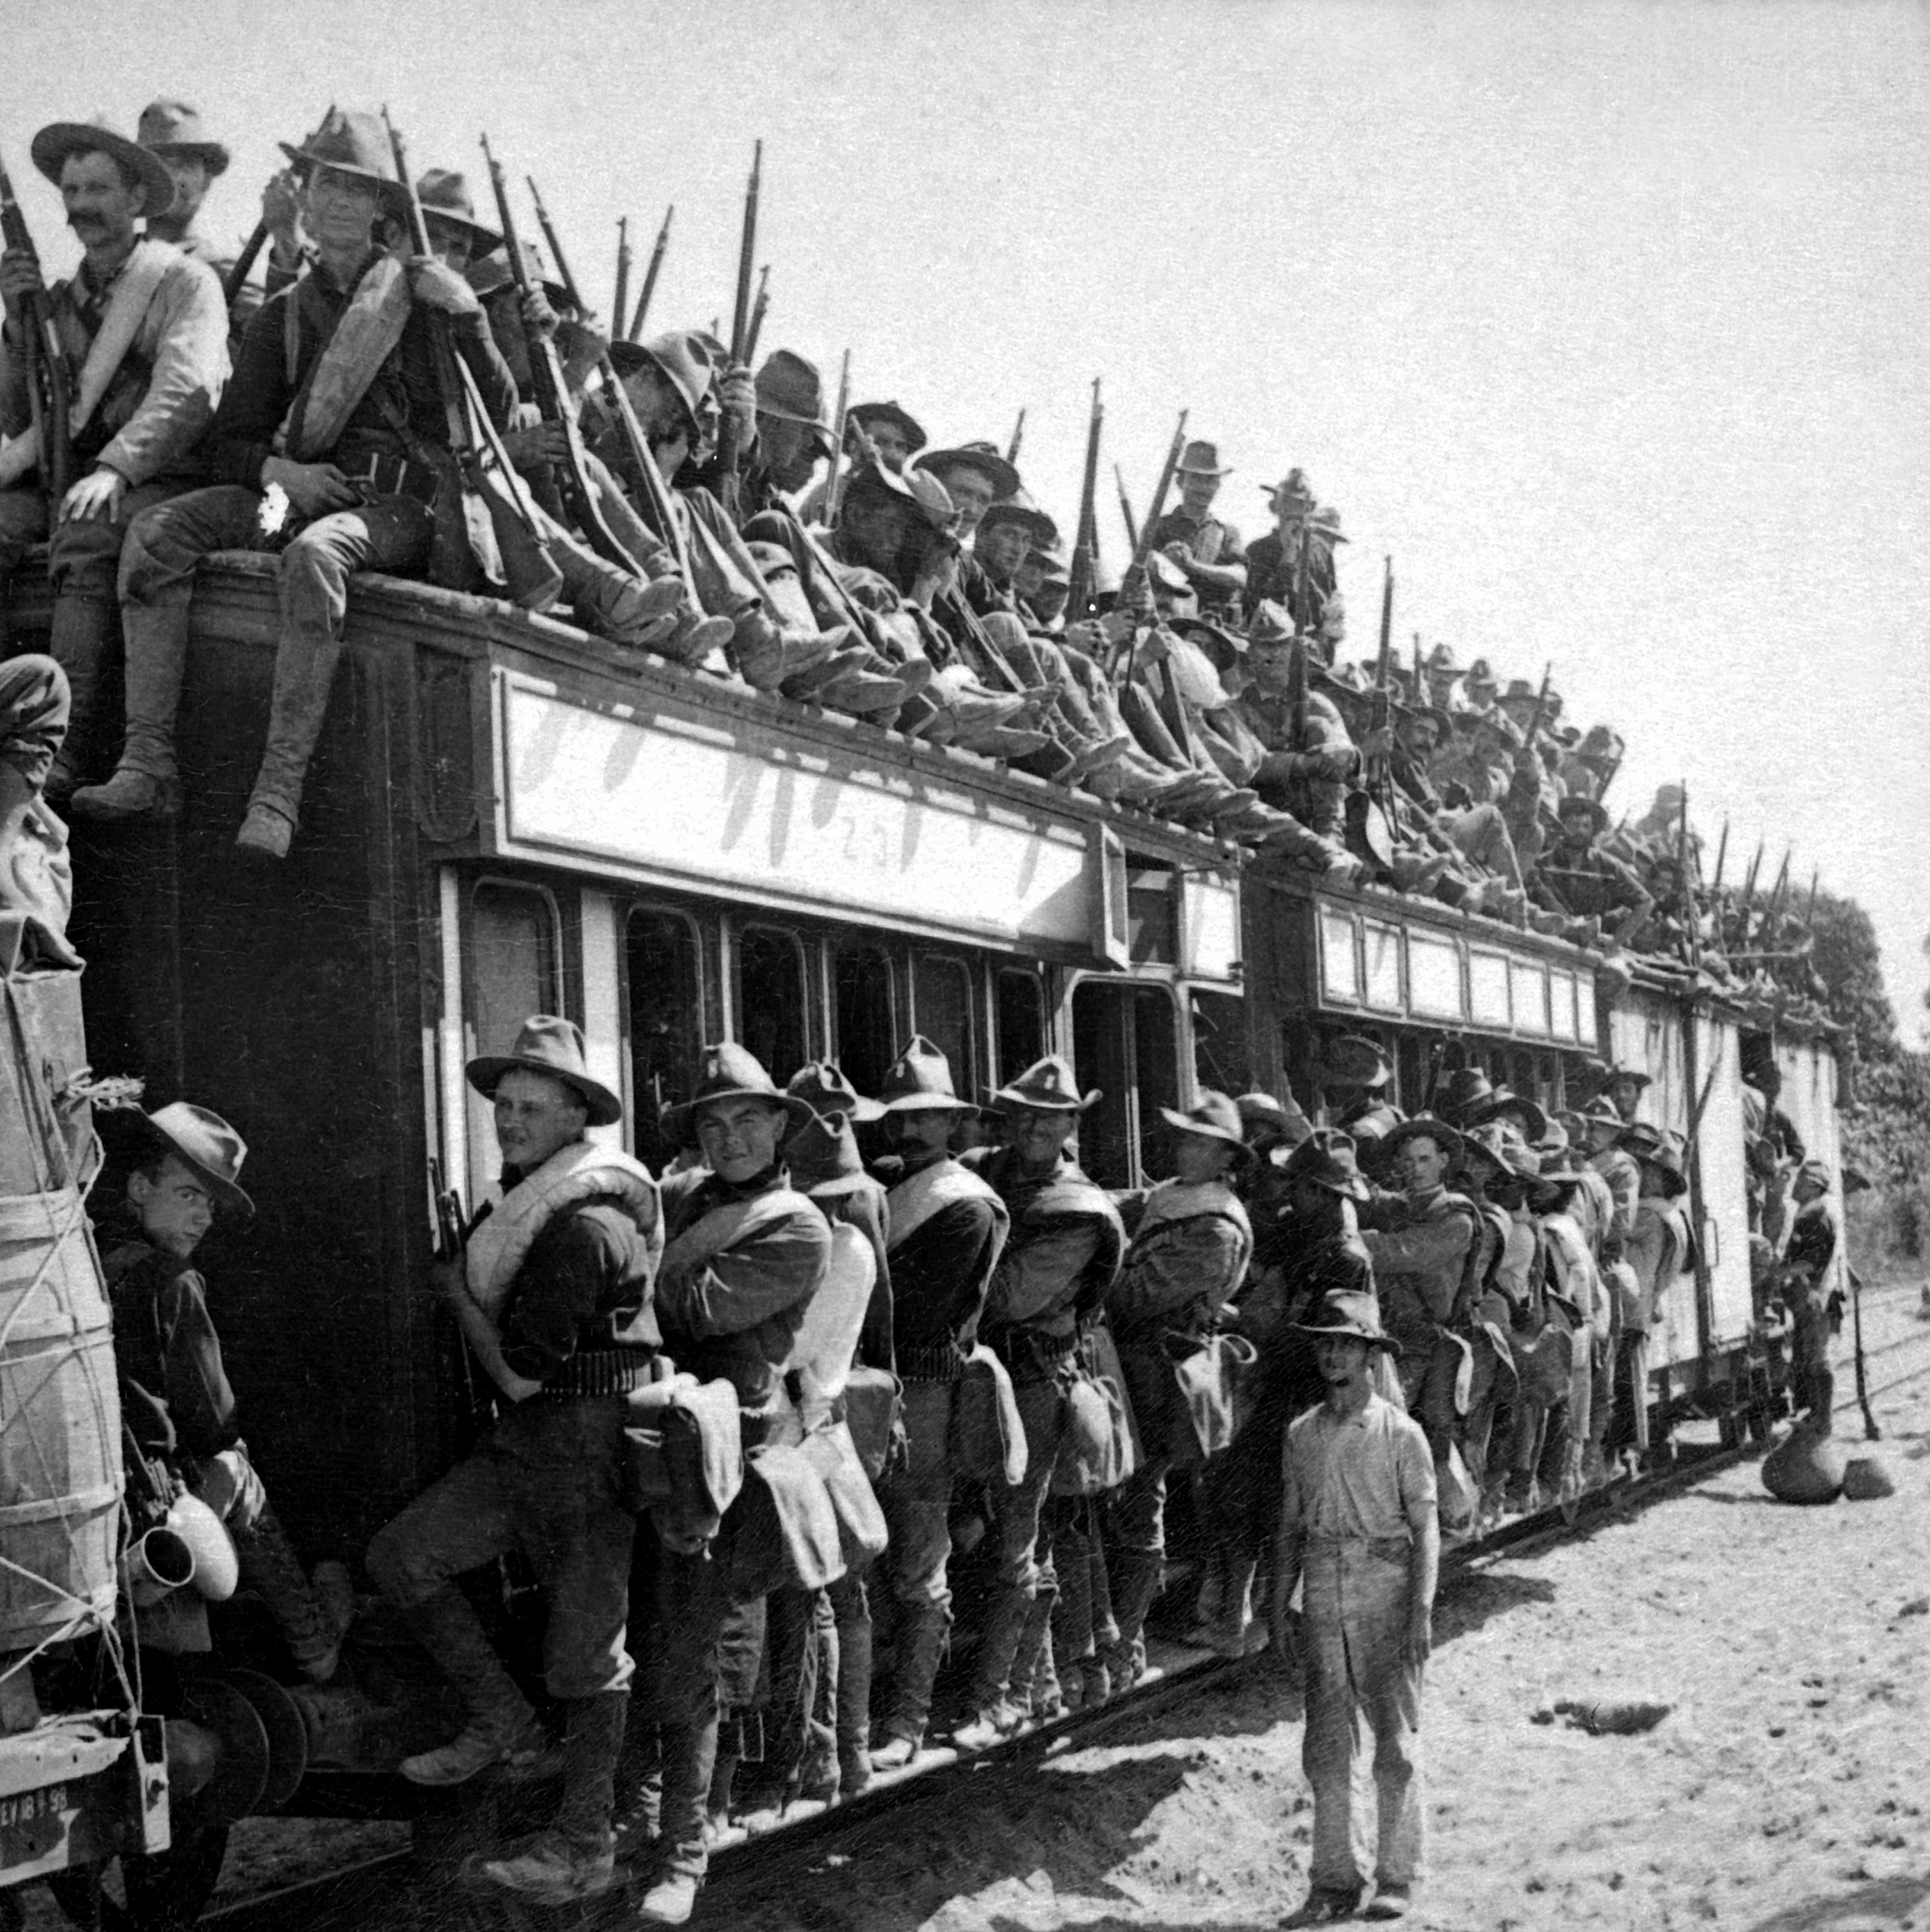 File Soldiers On A Train Jpg Wikimedia Commons